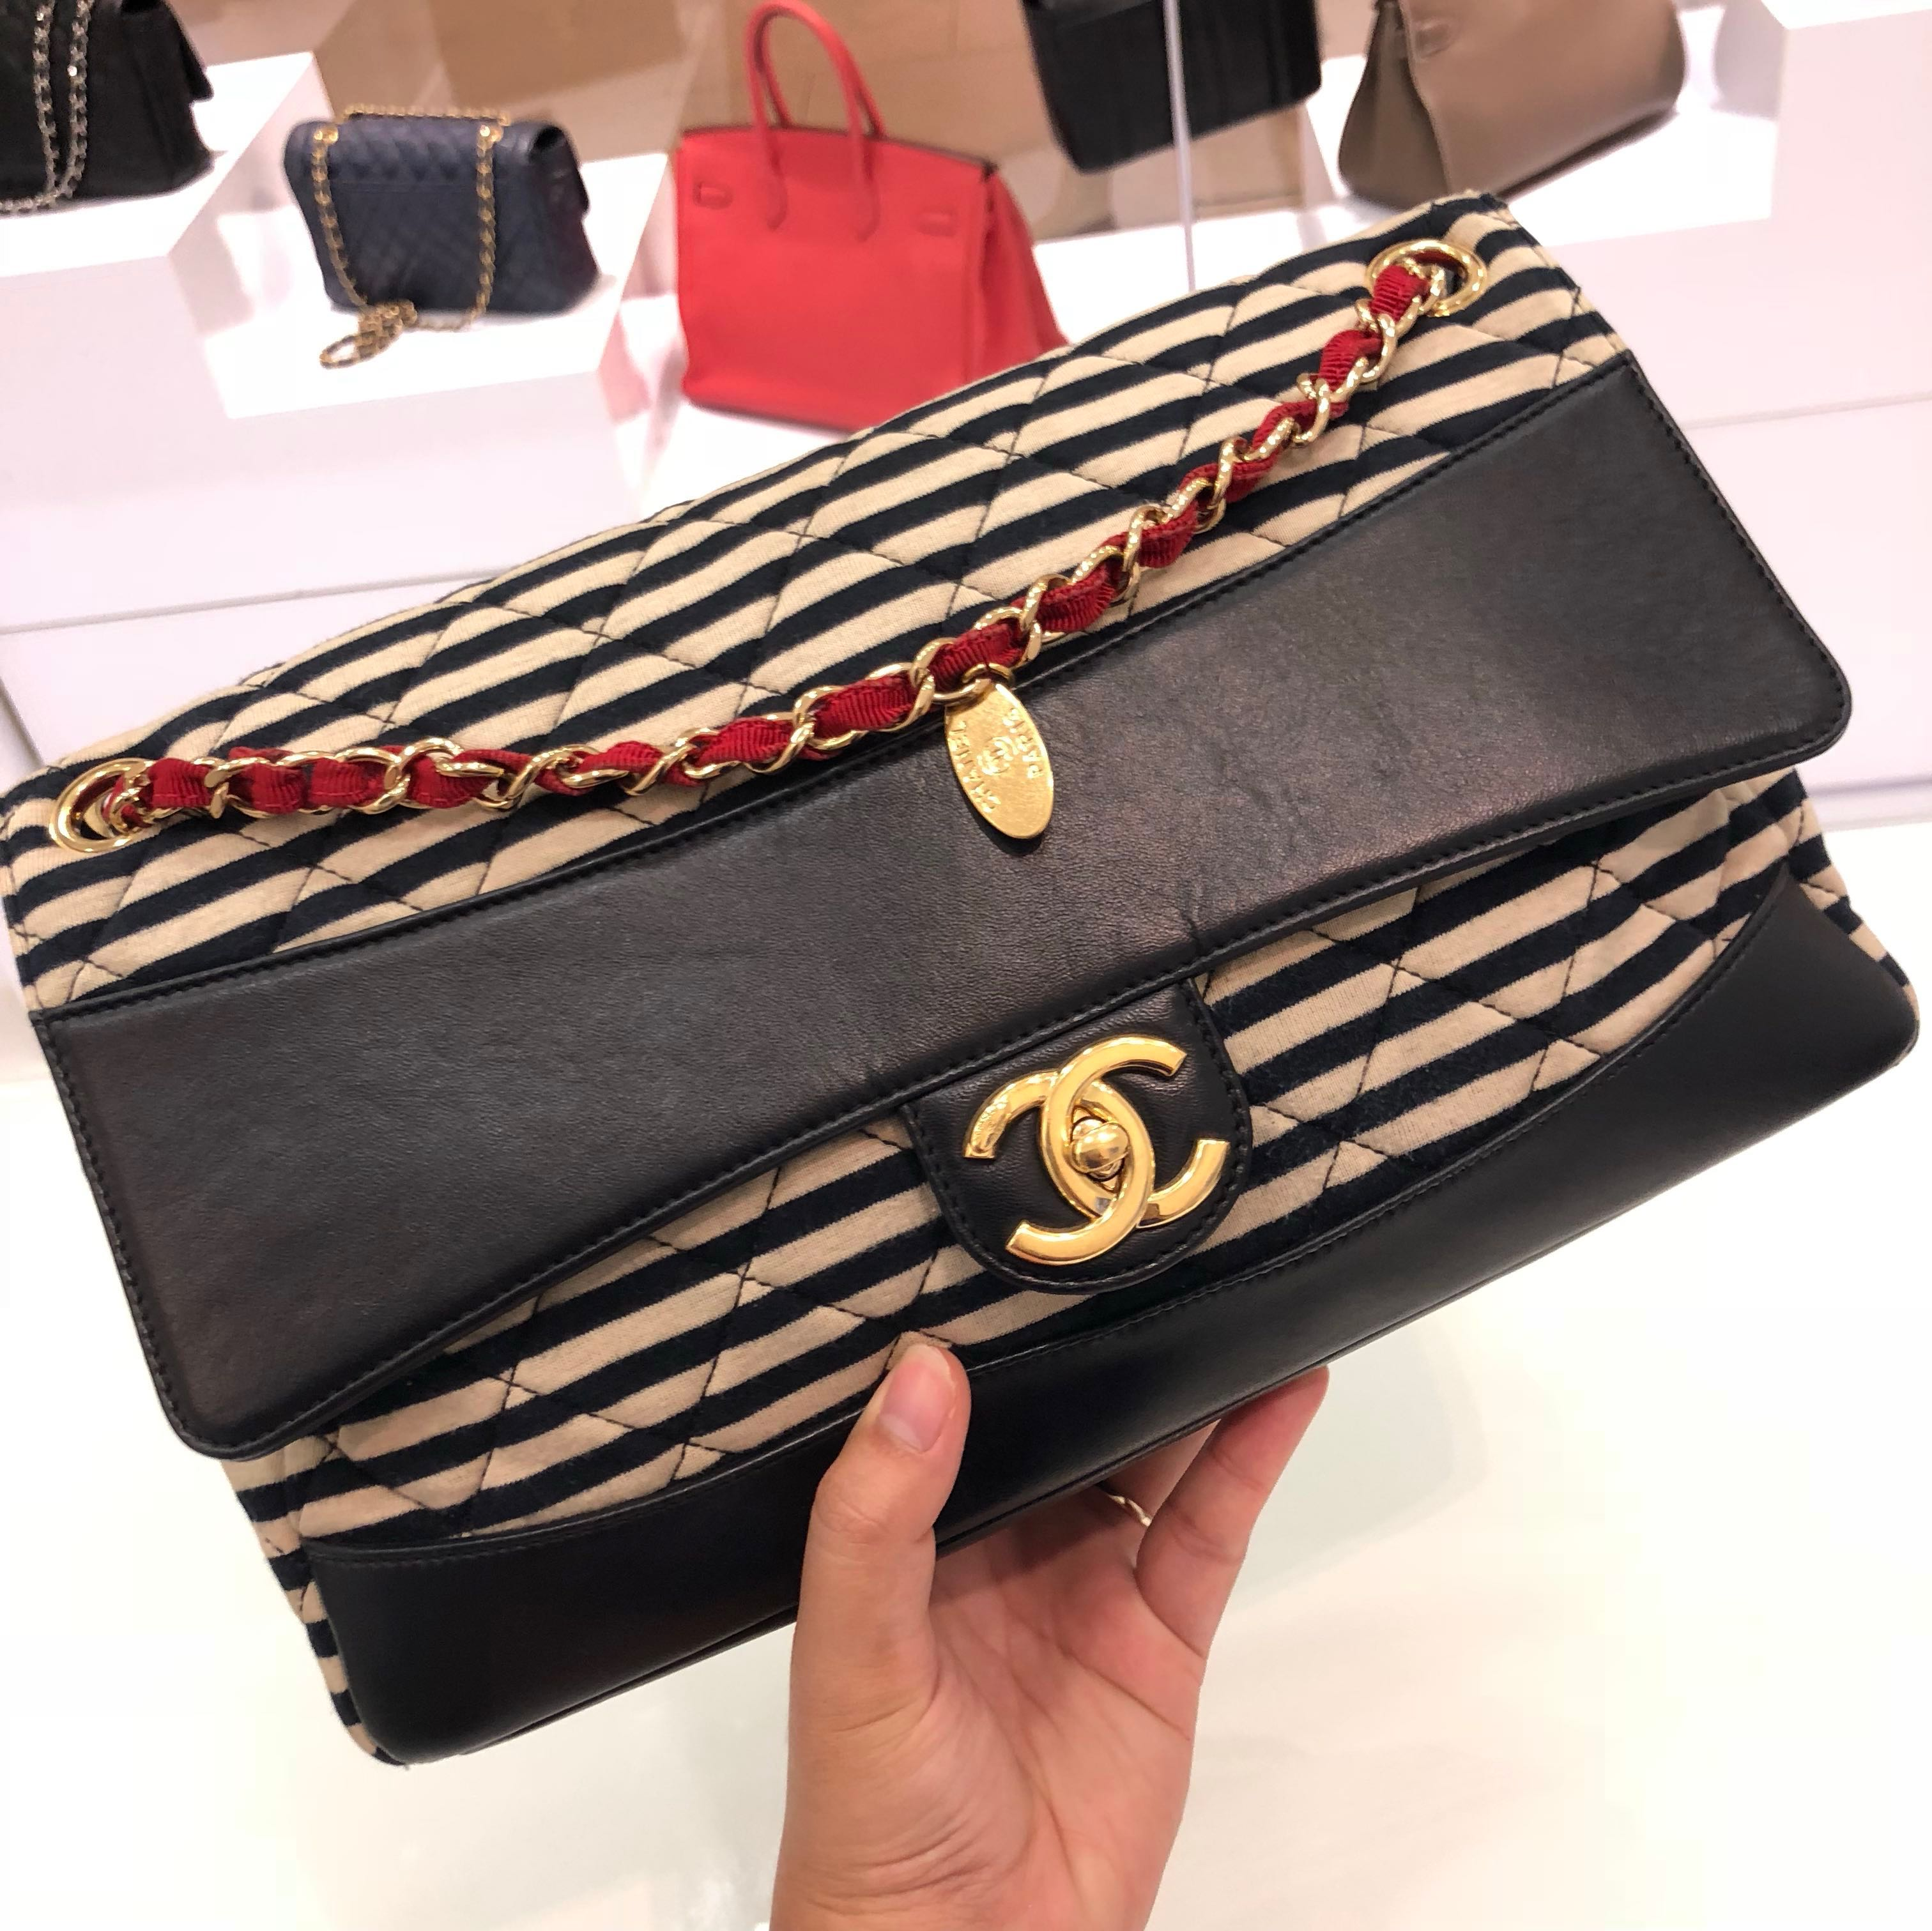 e2ed6dc17a67 ❌SOLD!❌ Super Good Deal! Chanel 2-in-1 Flap in Striped fabric ...